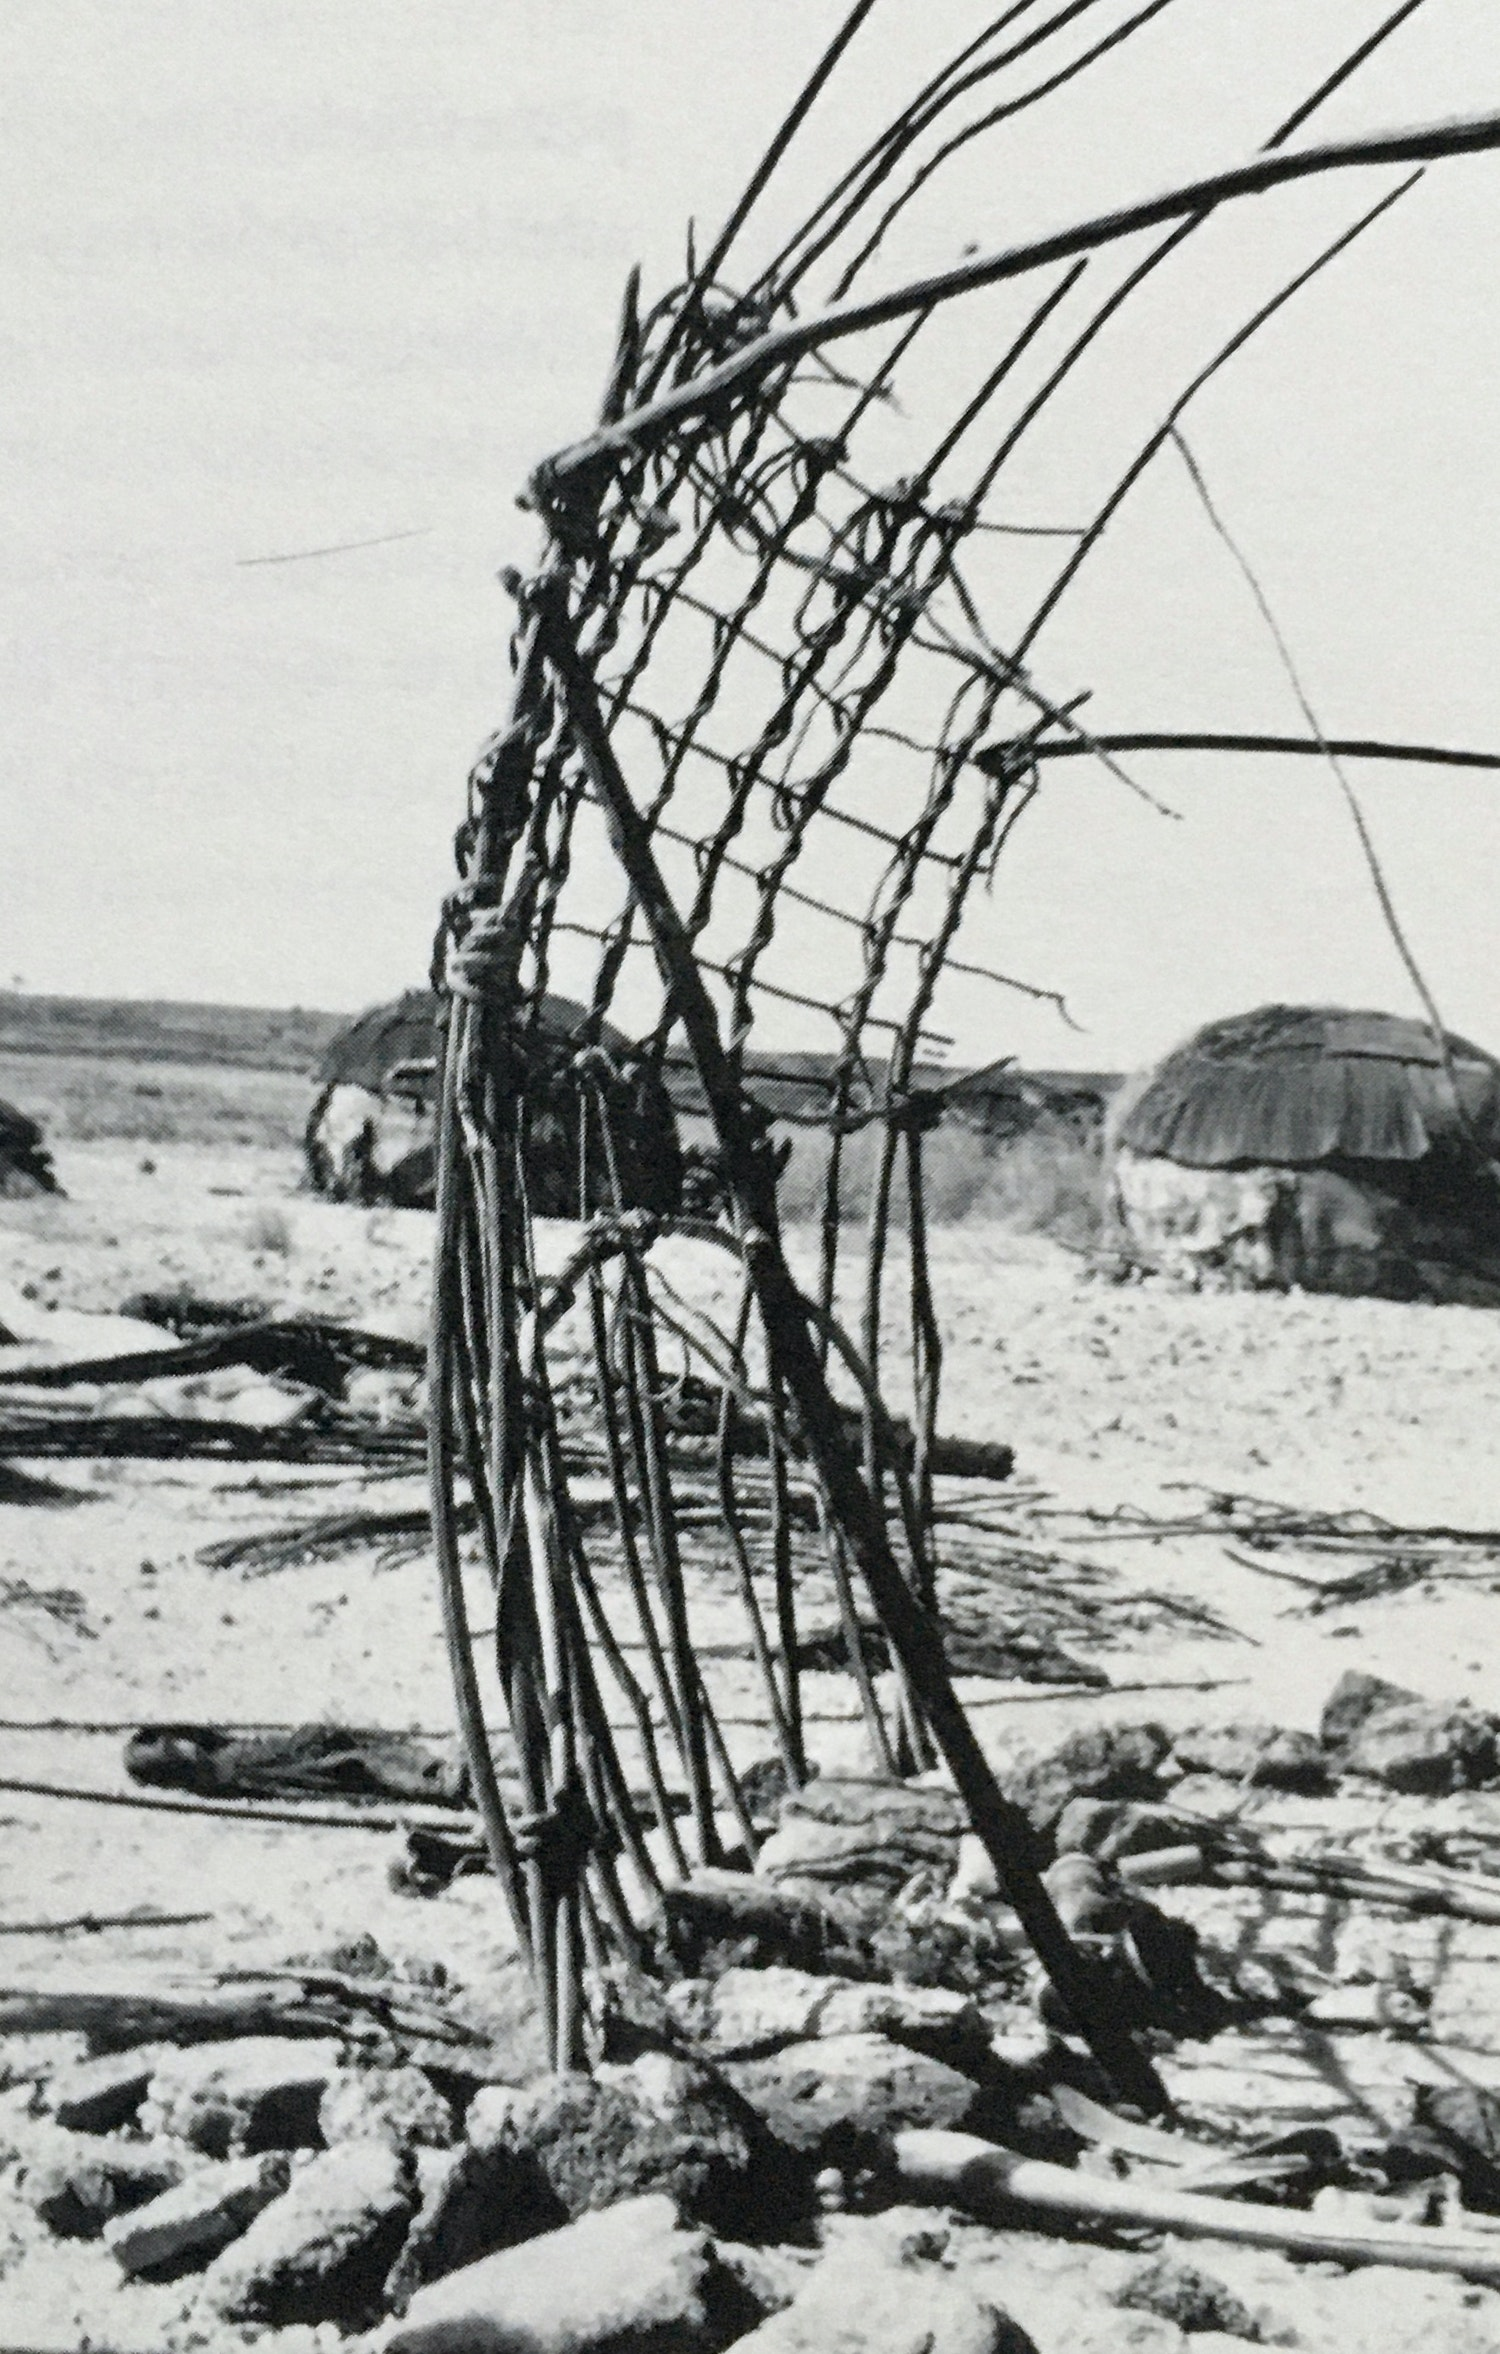 The rear reinforcing armature of a Gabra tent in northern Kenya